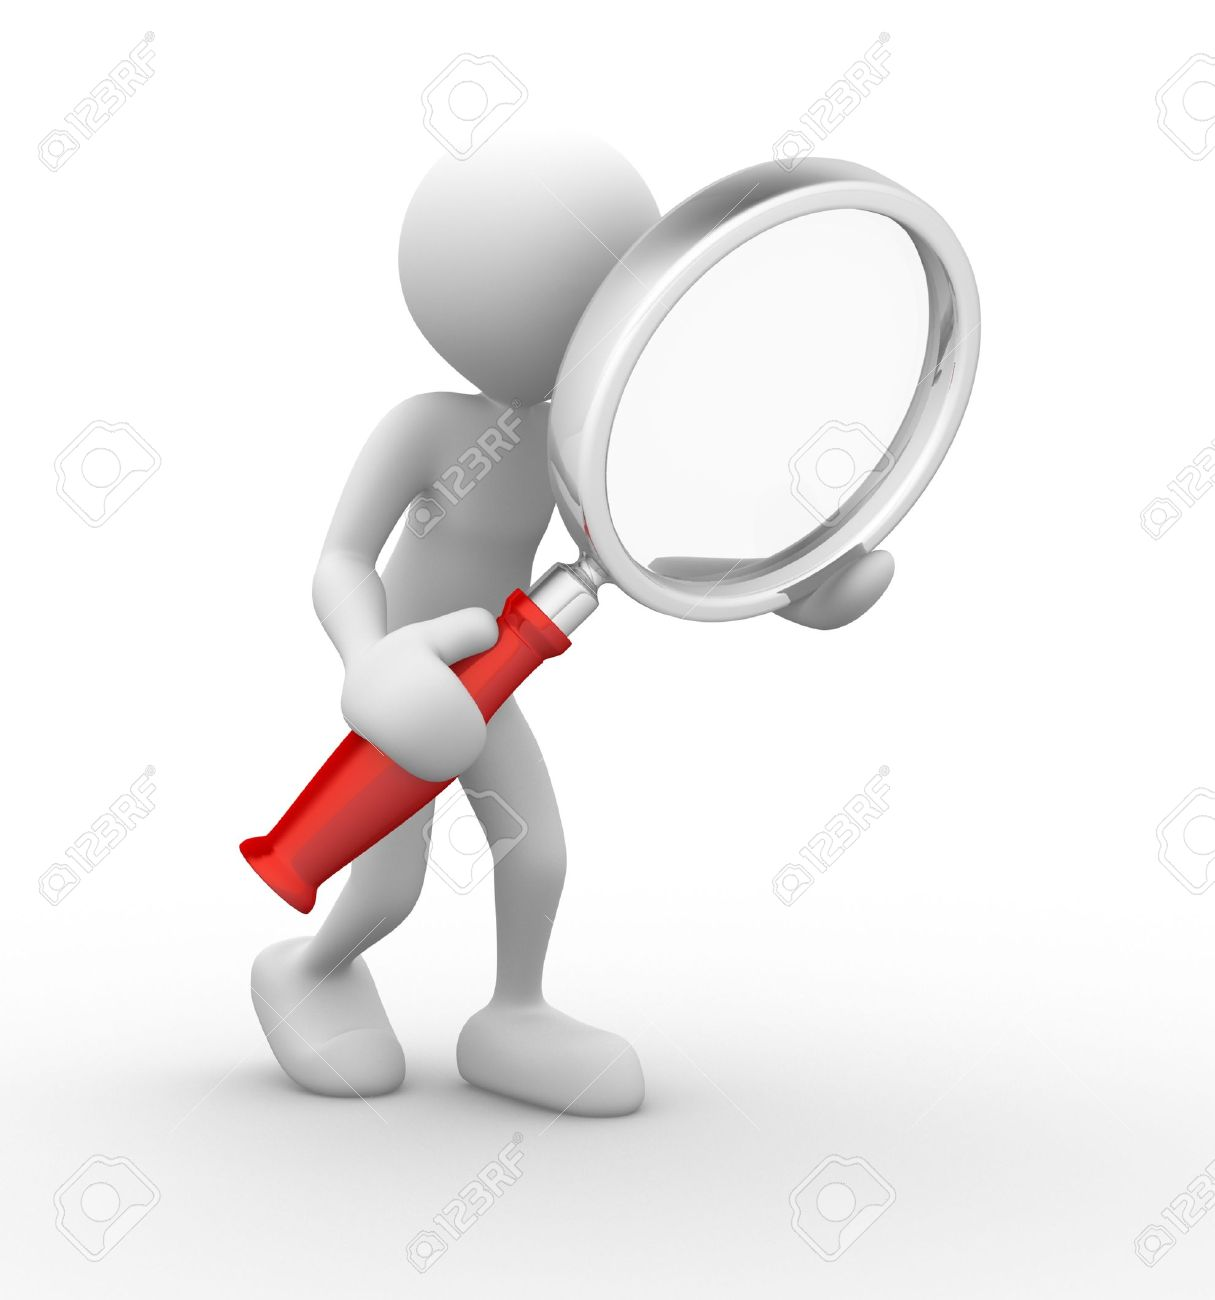 3d people - man, person with a magnifying glass. Search Concept Standard-Bild - 17532578